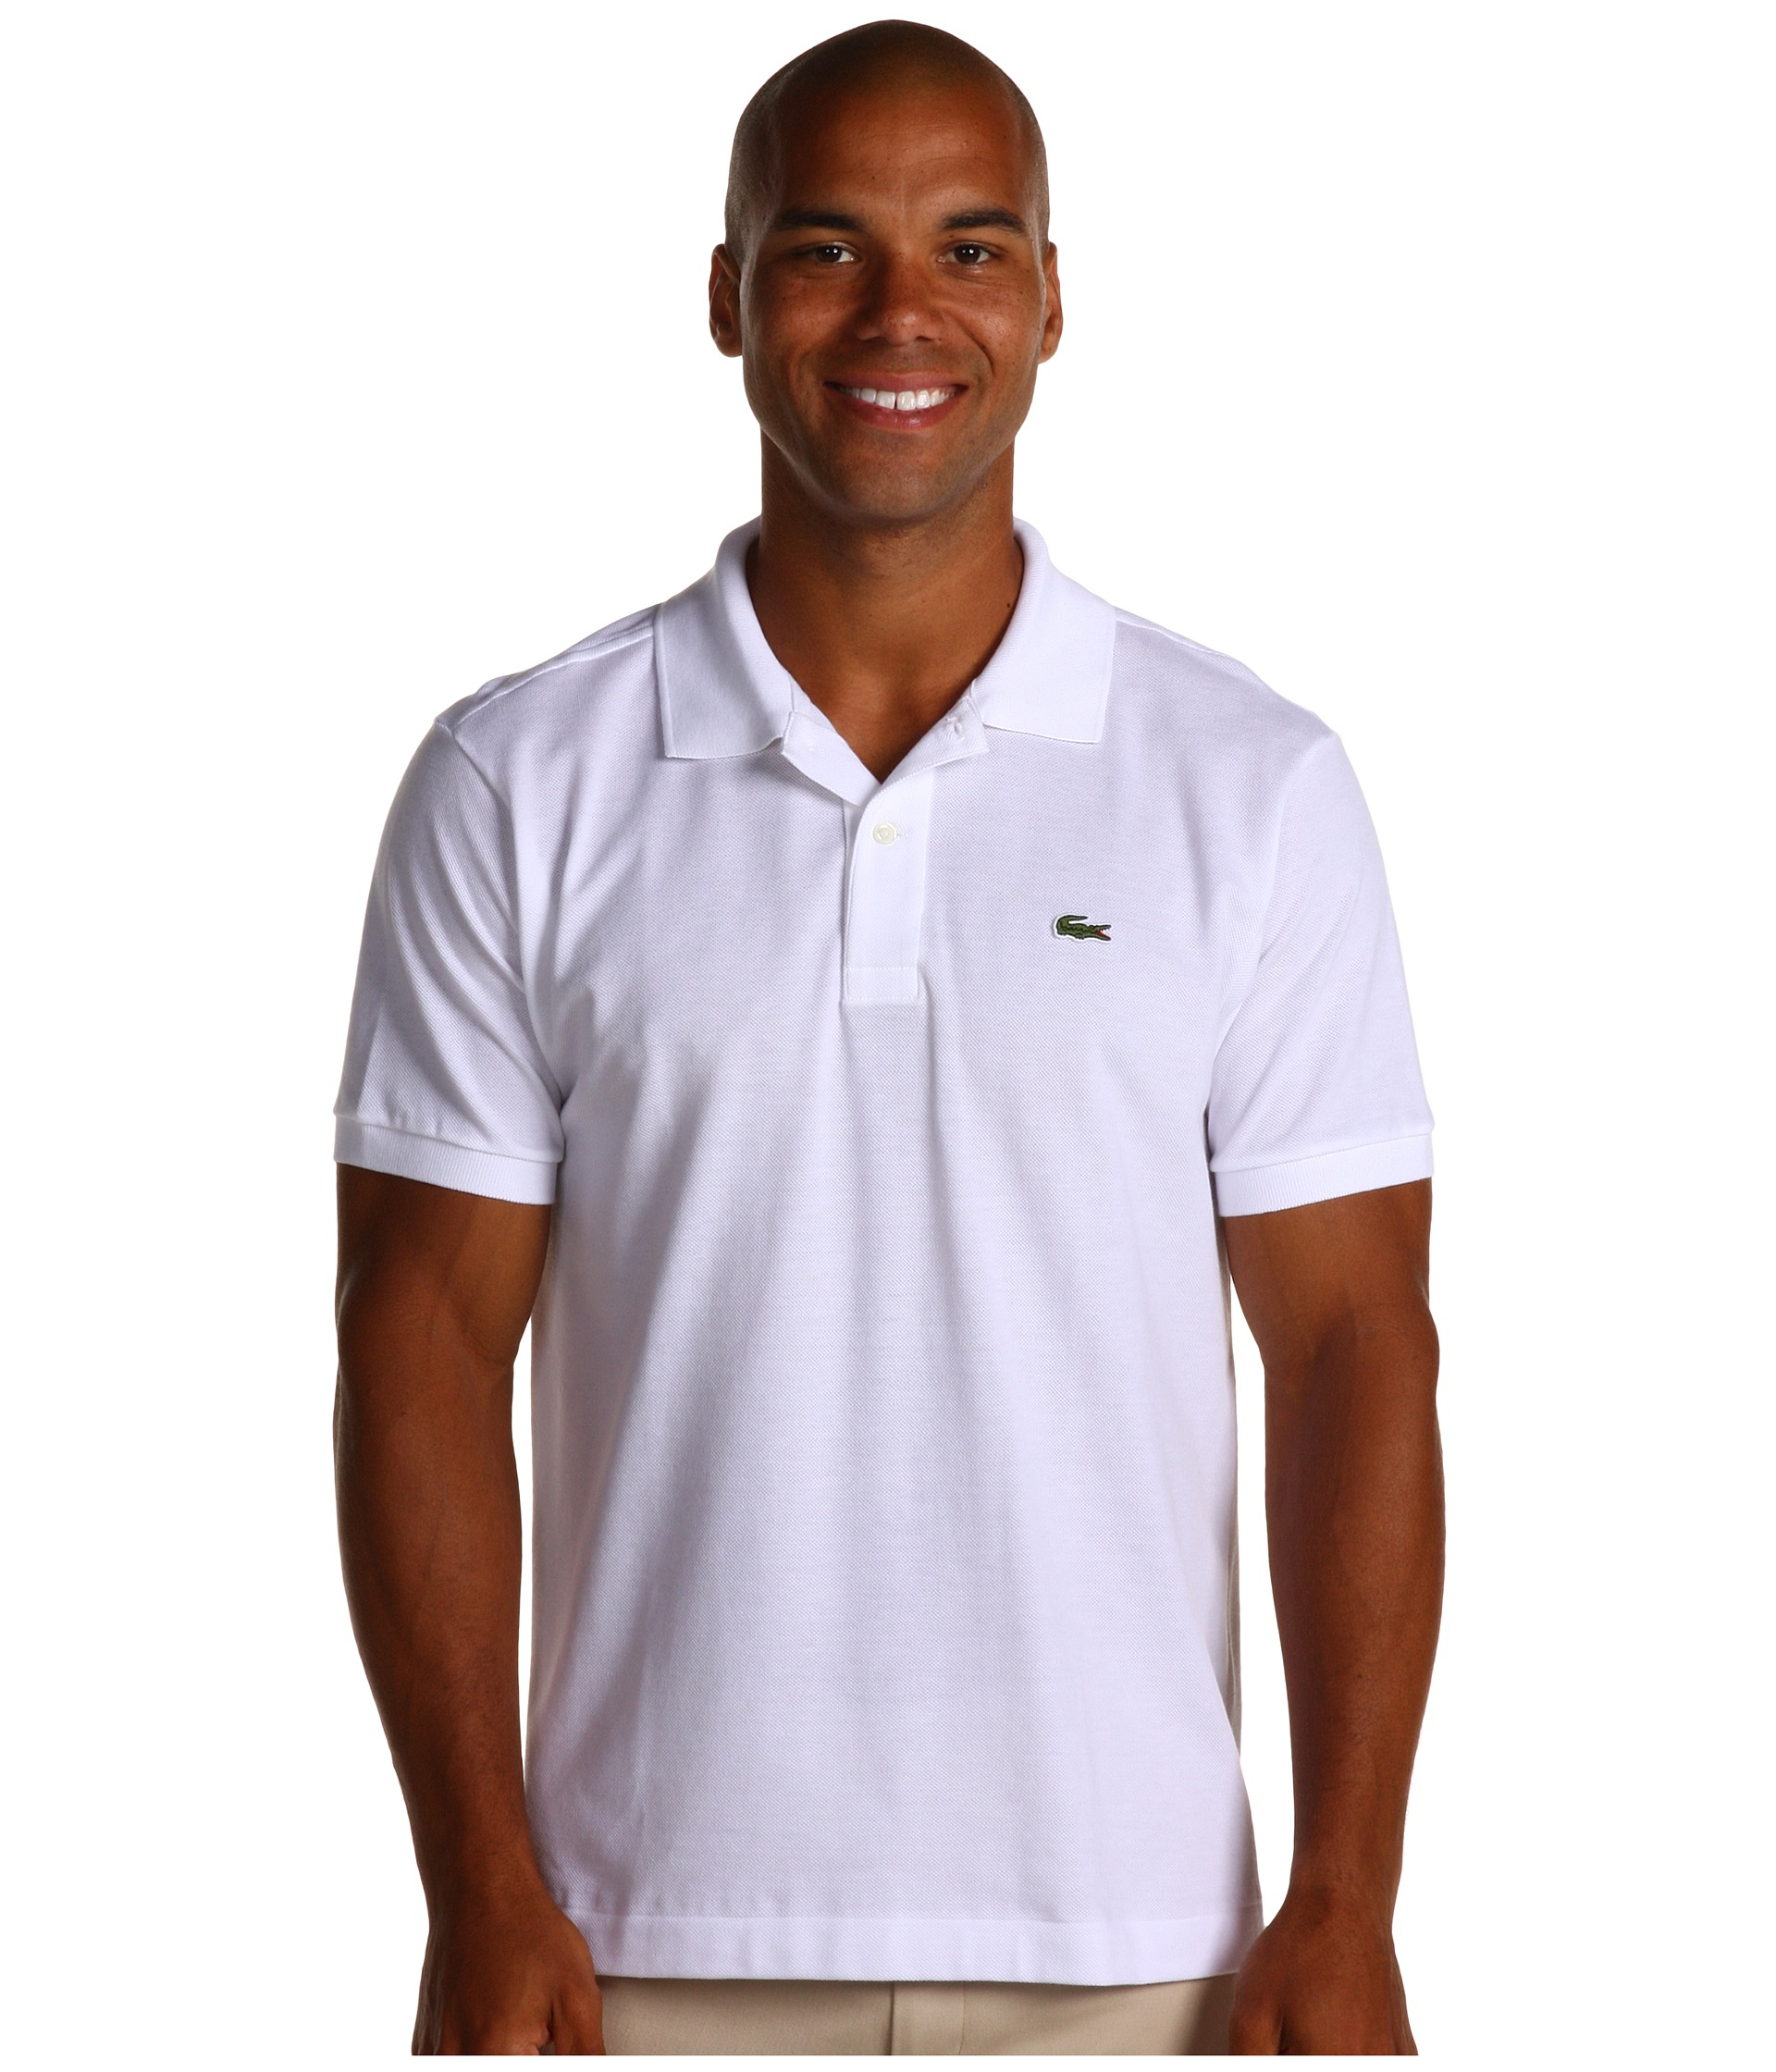 lacoste l1212 classic pique polo shirt in white for men lyst. Black Bedroom Furniture Sets. Home Design Ideas